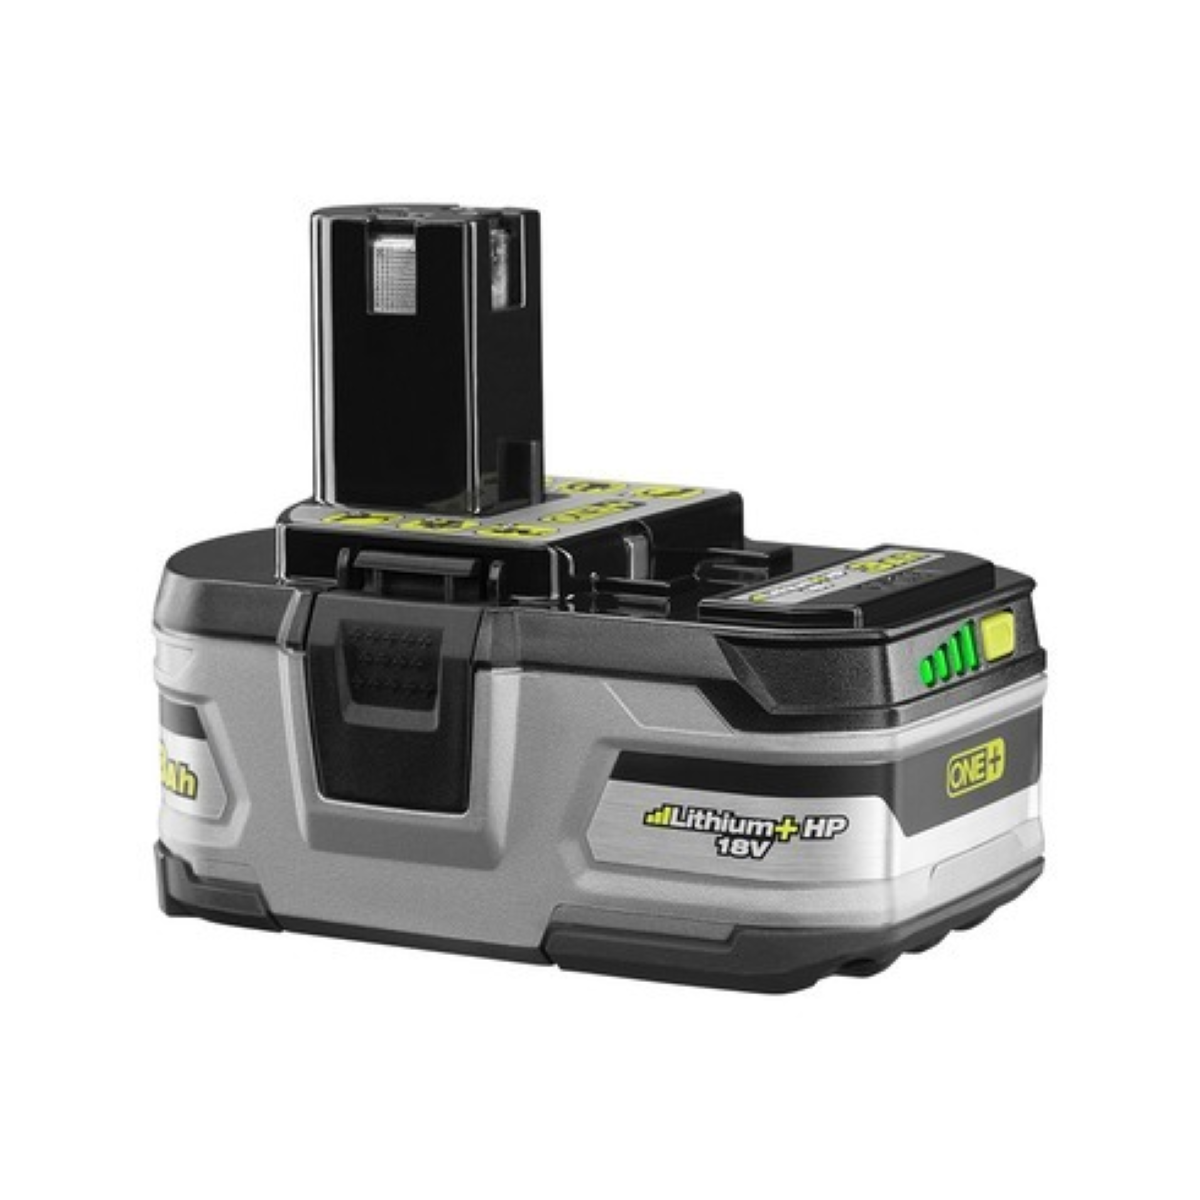 Ryobi P191 18V ONE+ 3.0Ah Battery - Quick-Release Easy-Access Latches